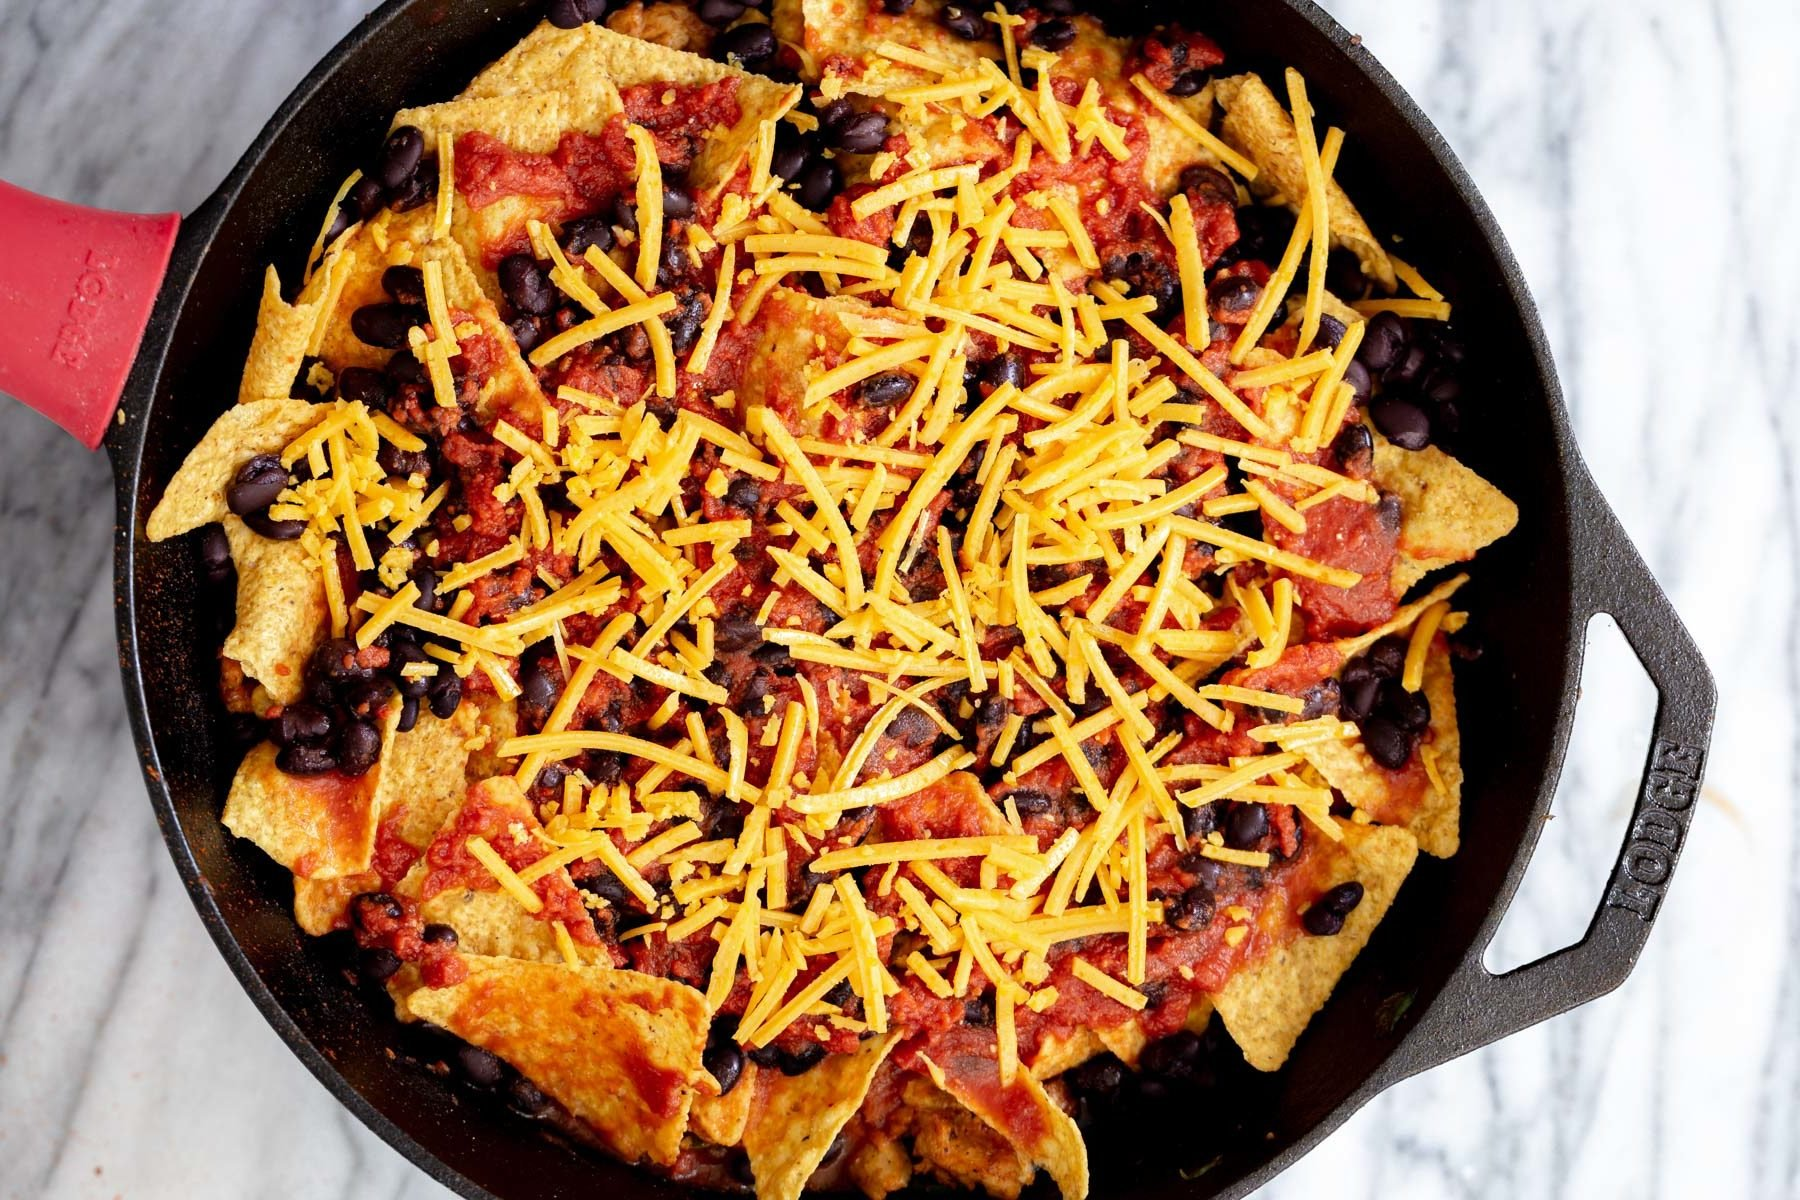 vegan skillet enchiladas being topped with vegan cheese shreds